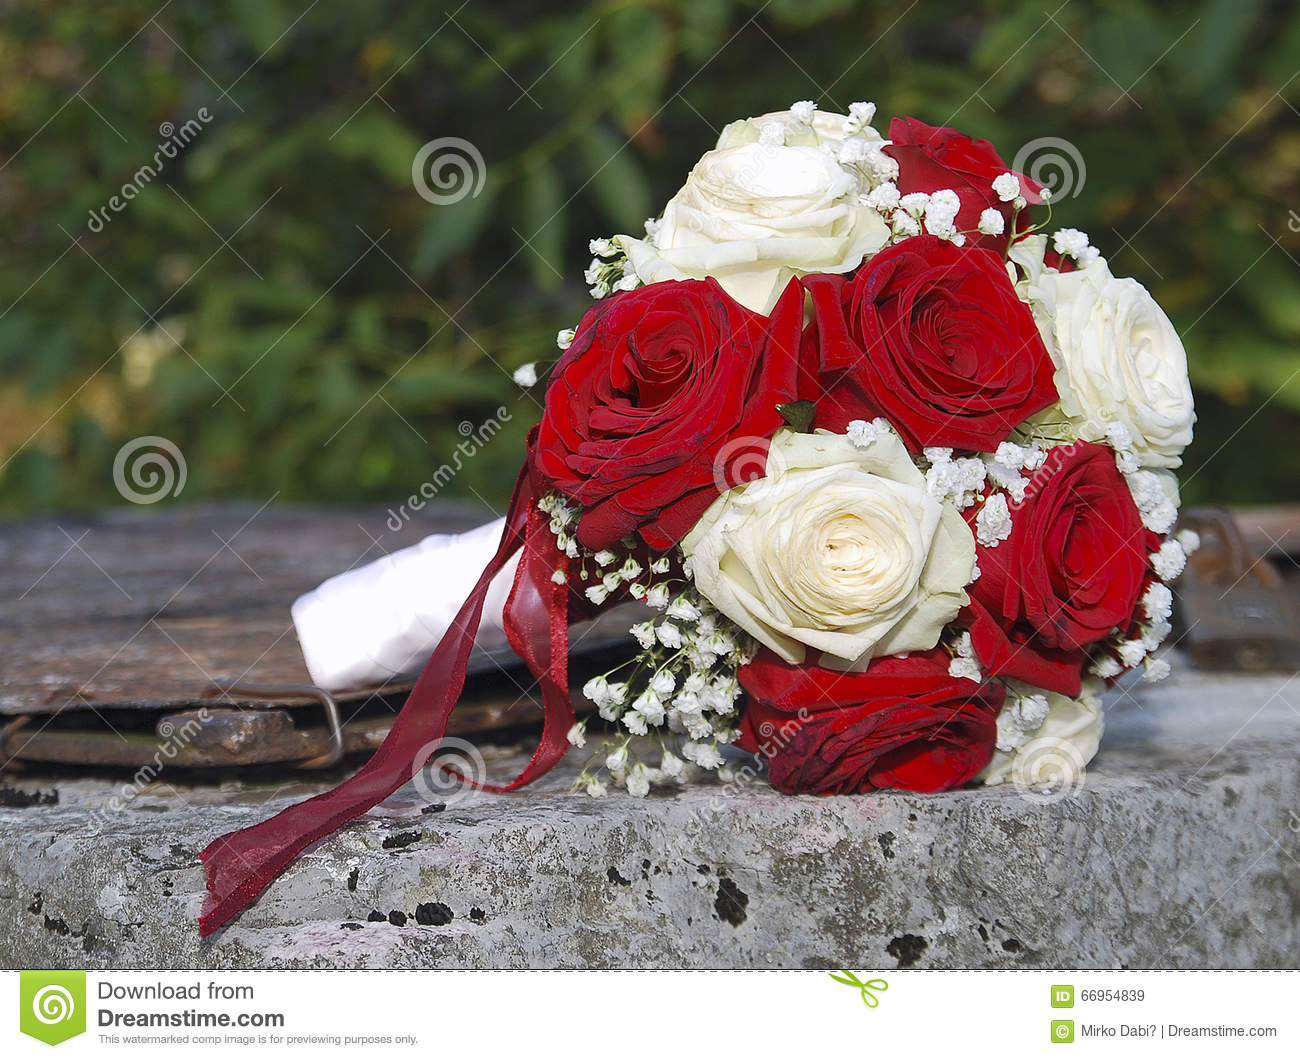 Red White Roses Wedding Bouquet Rusty Well 66954839